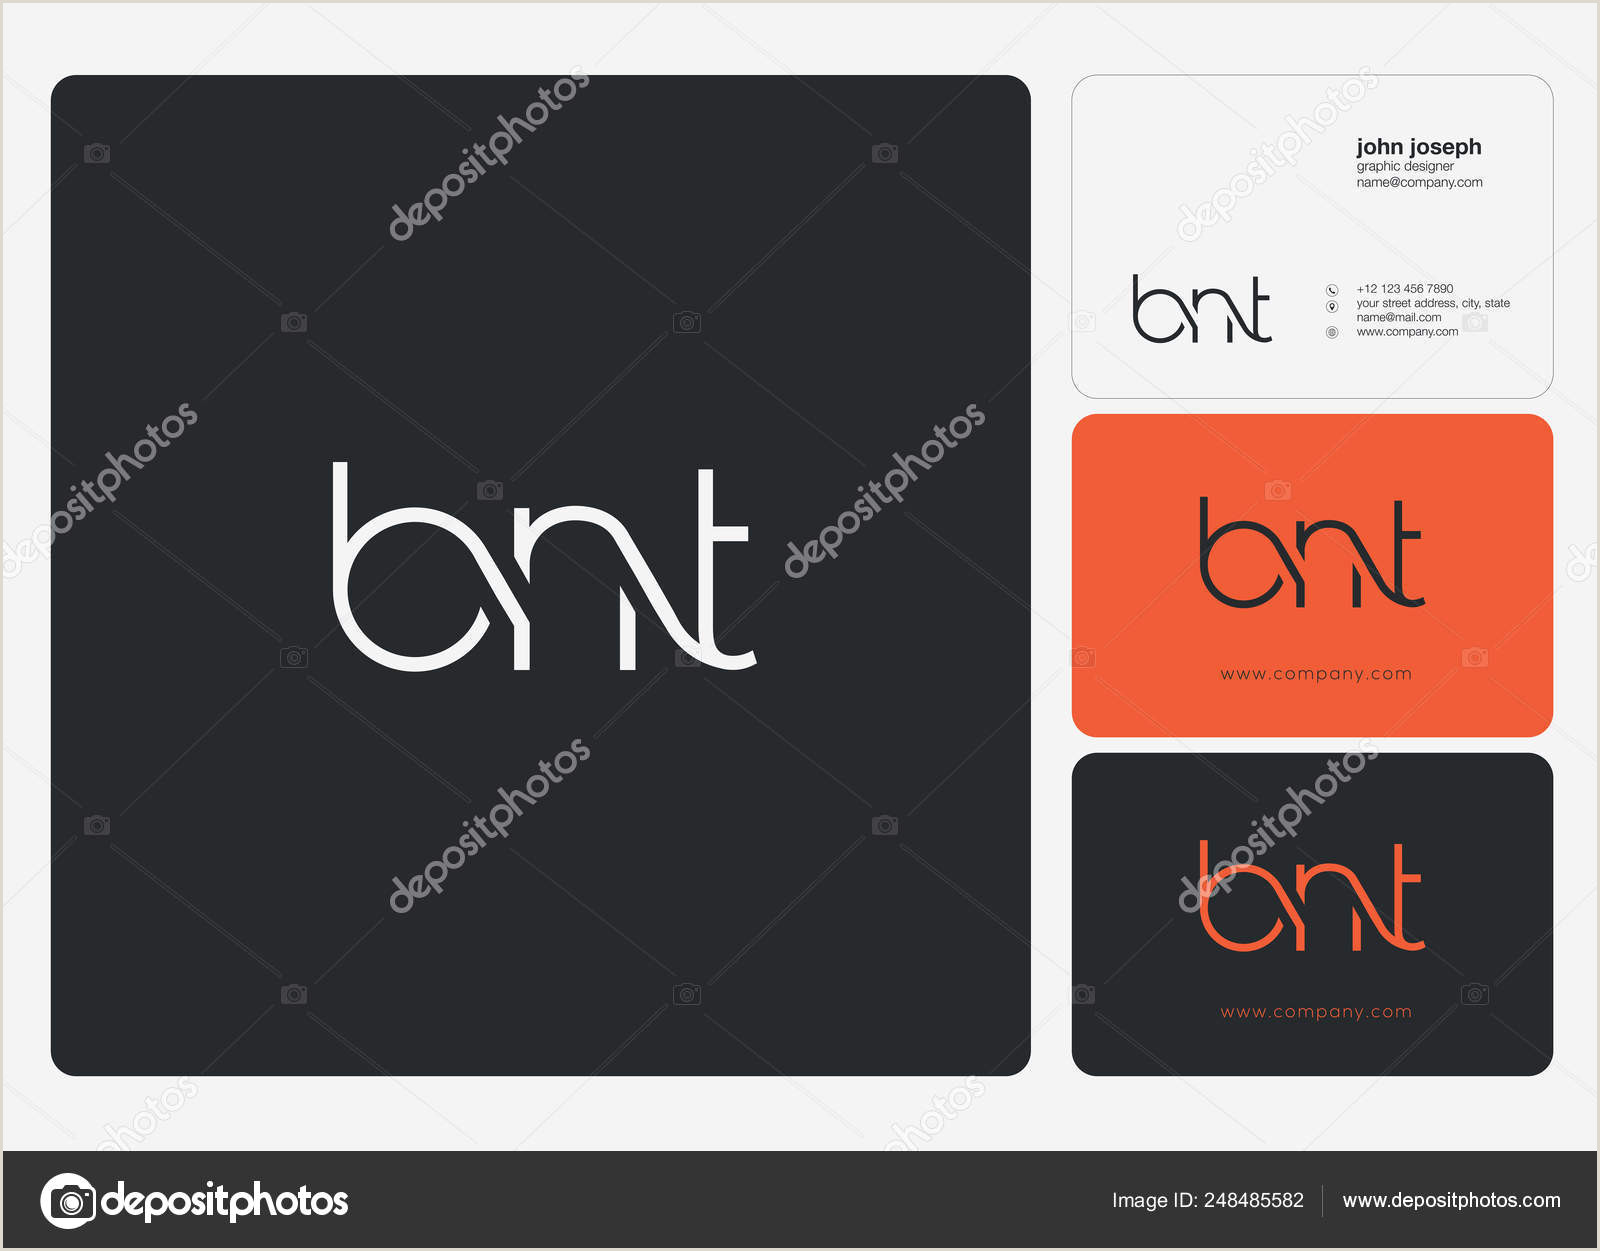 Business Card Template With Logo Logo Joint Bnt For Business Card Template Vector